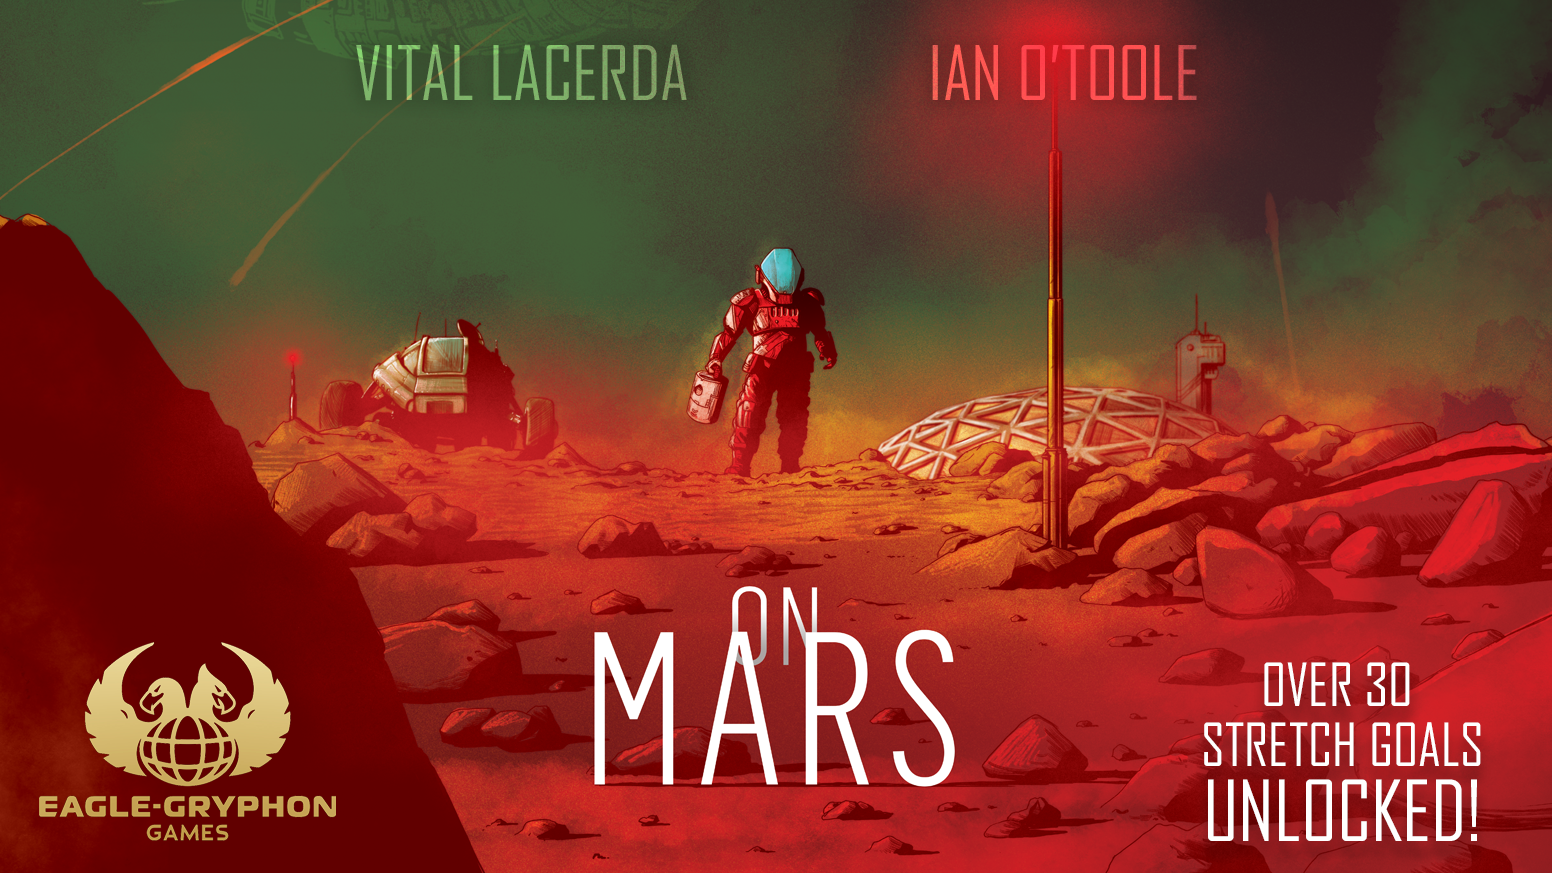 Advancing the colonization of Mars!